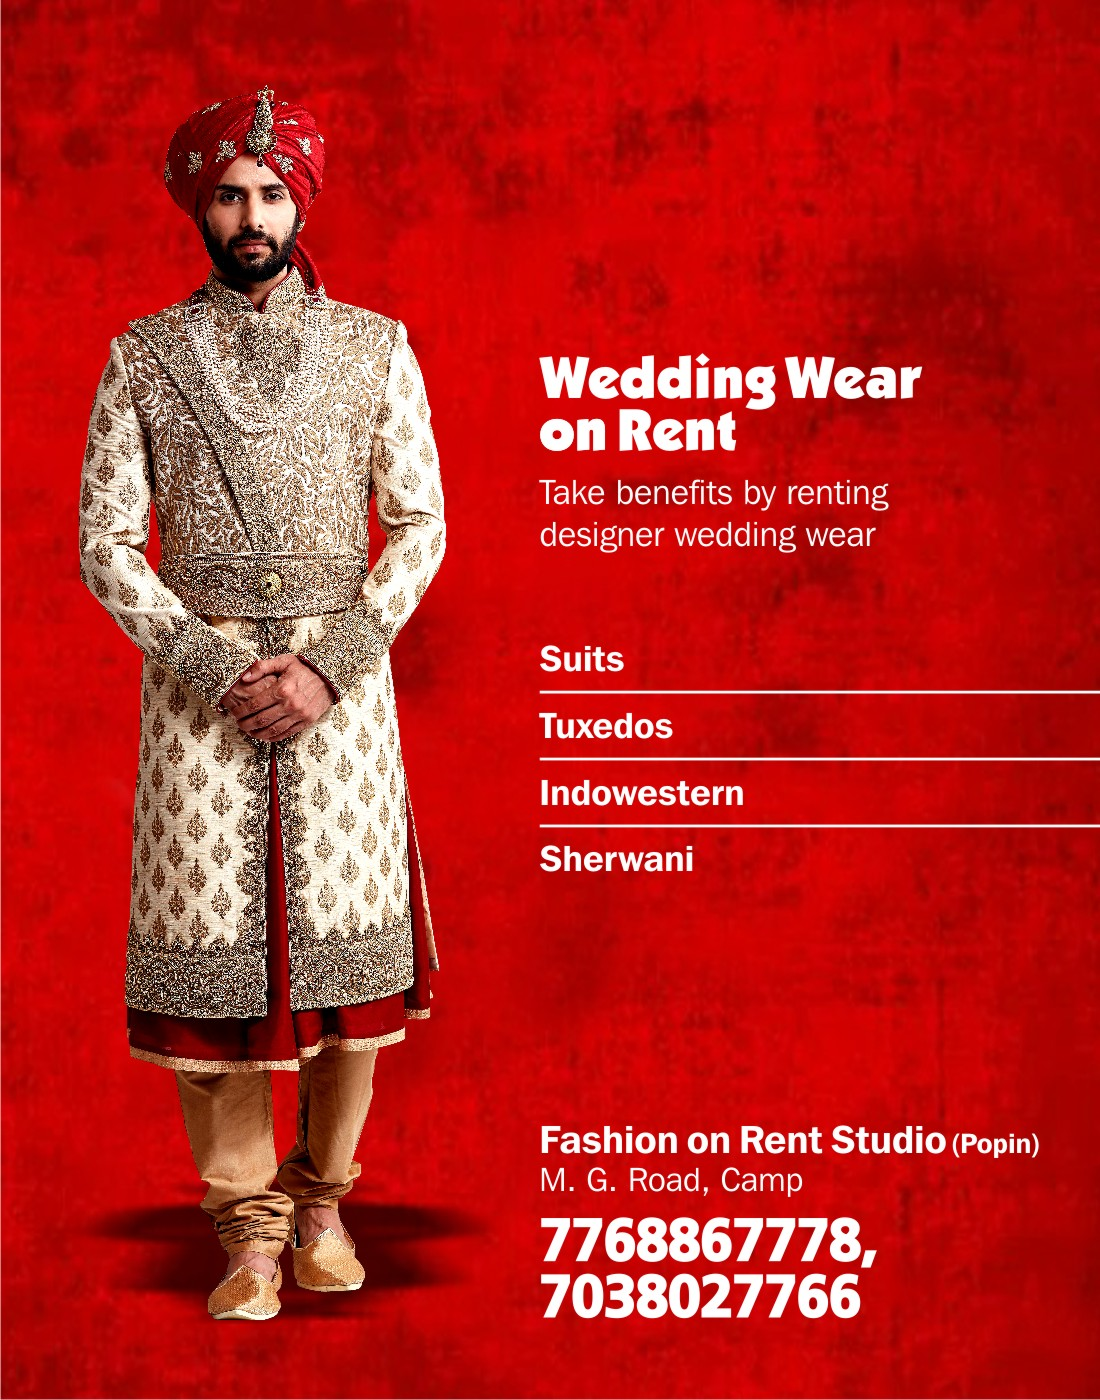 Fashion On Rent Popin In Camp Pune 411001 Sulekha Pune